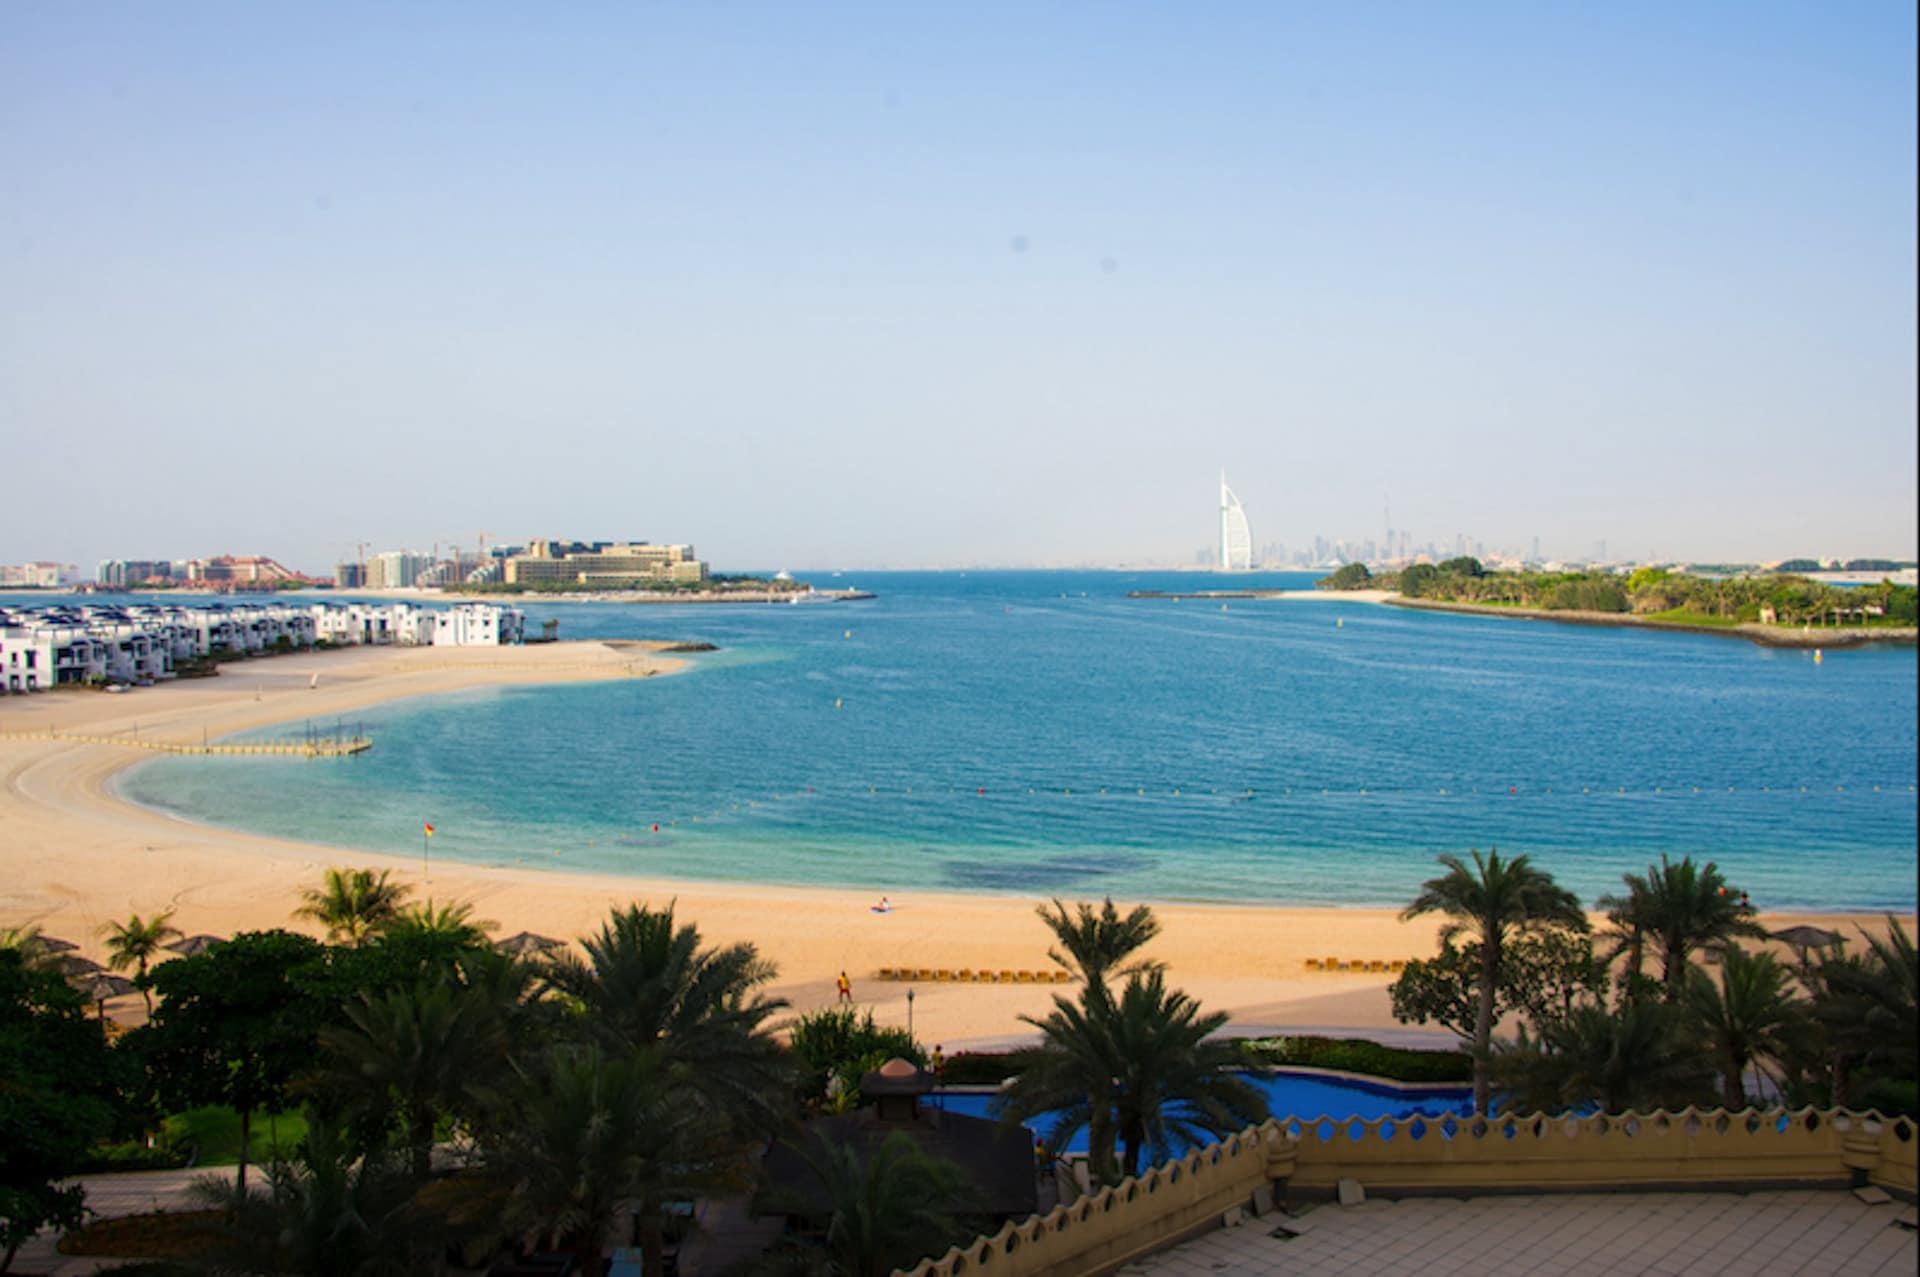 New shore 3 bedroom flat with direct beach access - Dubai